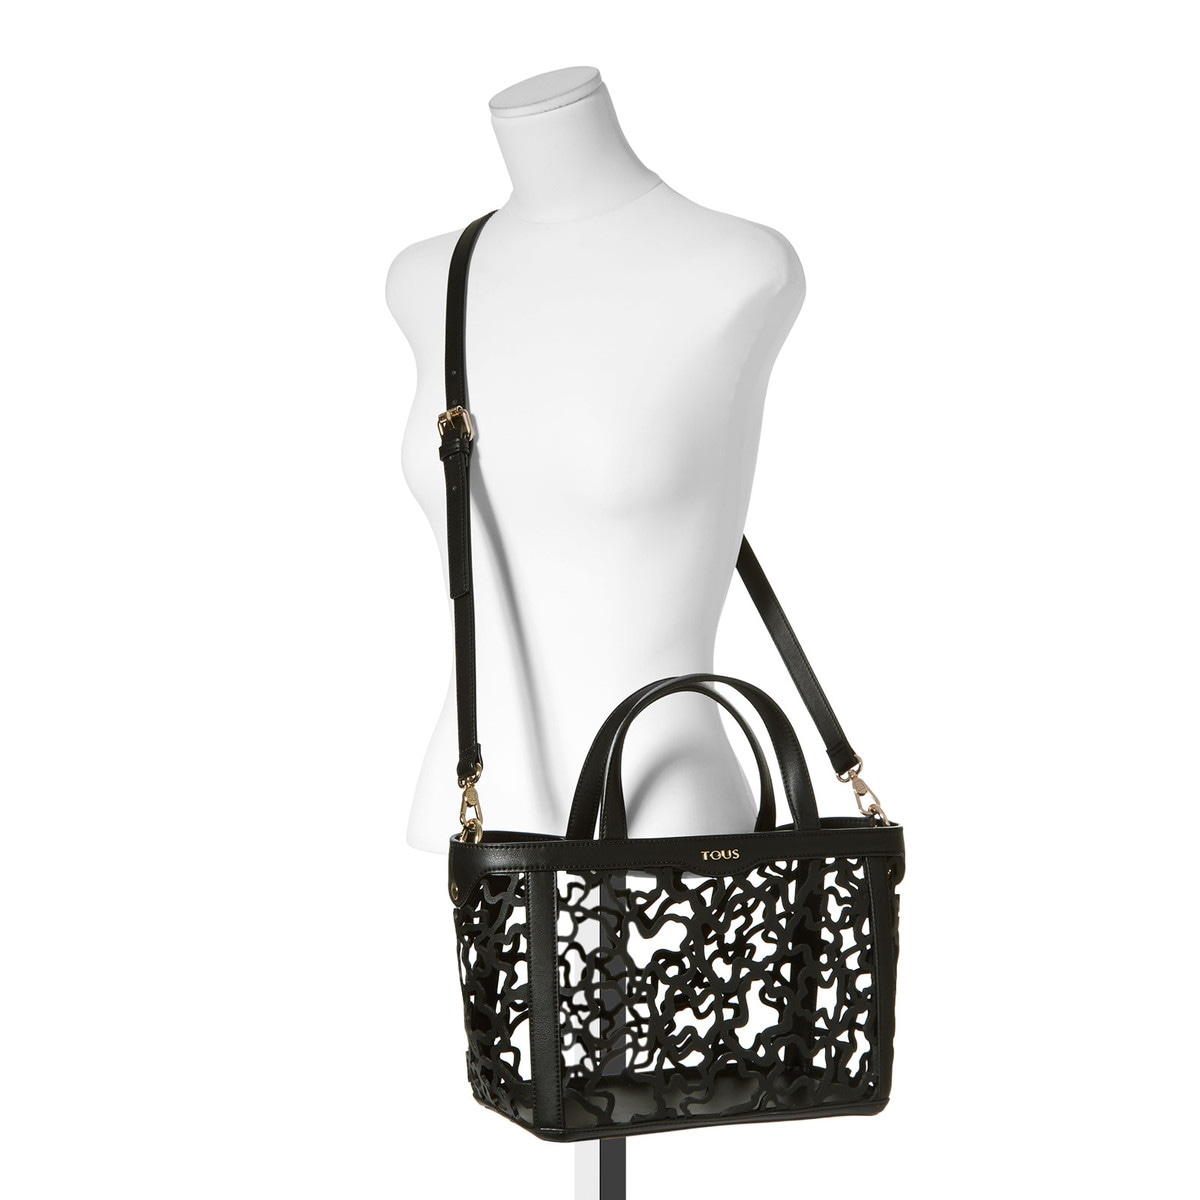 46d2c0e241 Small black colored Kaos Shock Tote bag - Tous Site US